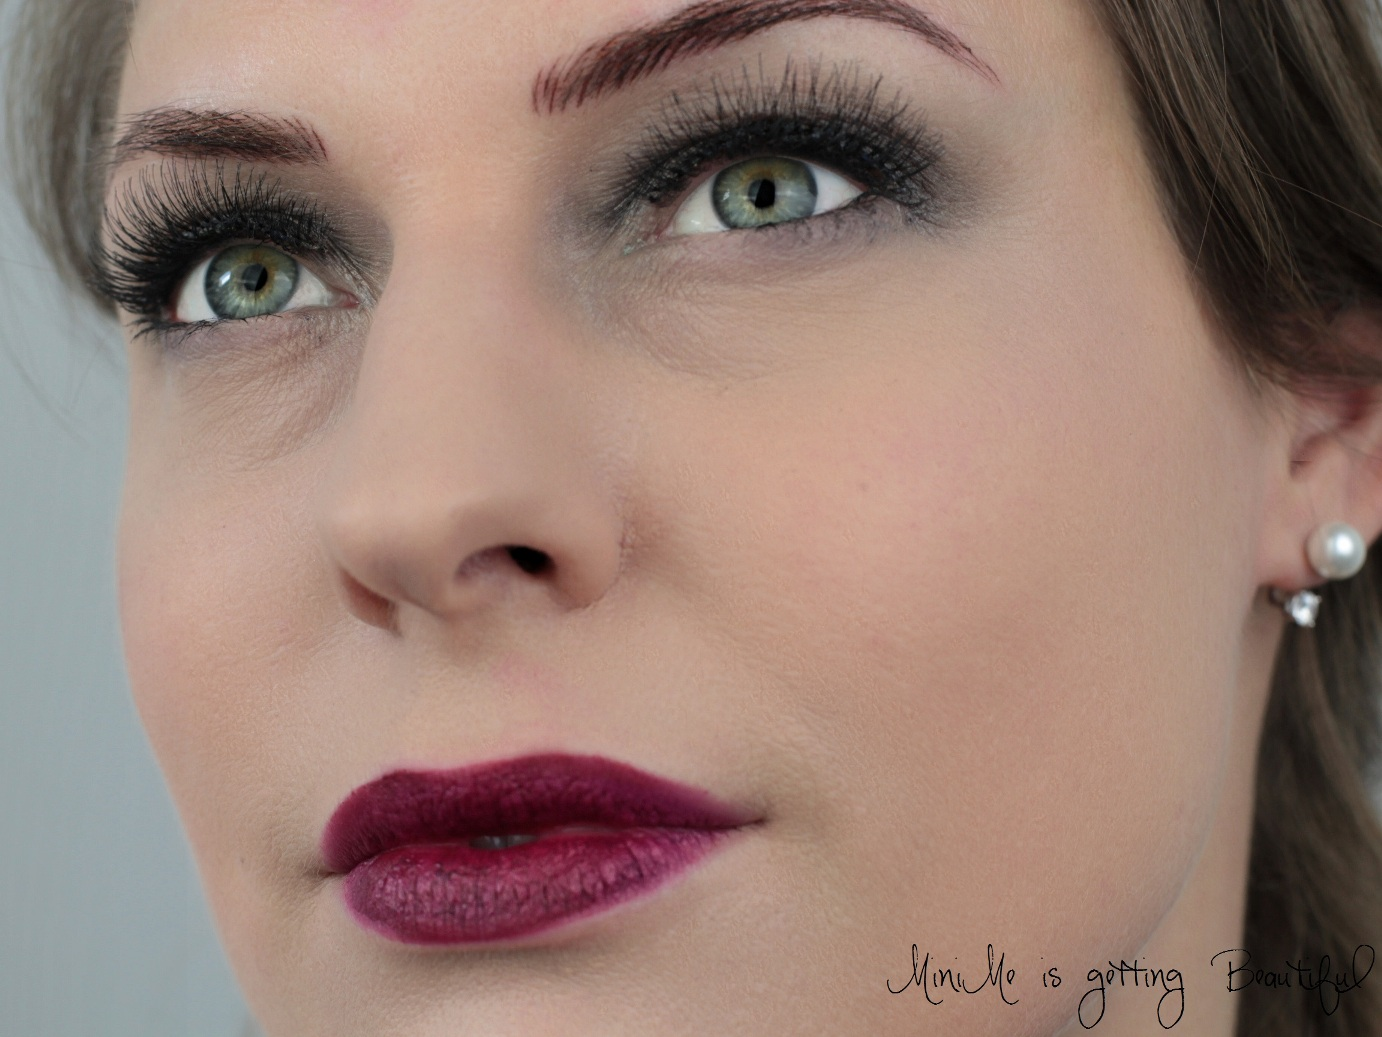 nachgeschminkt-matt-eyes-bold-lip-up